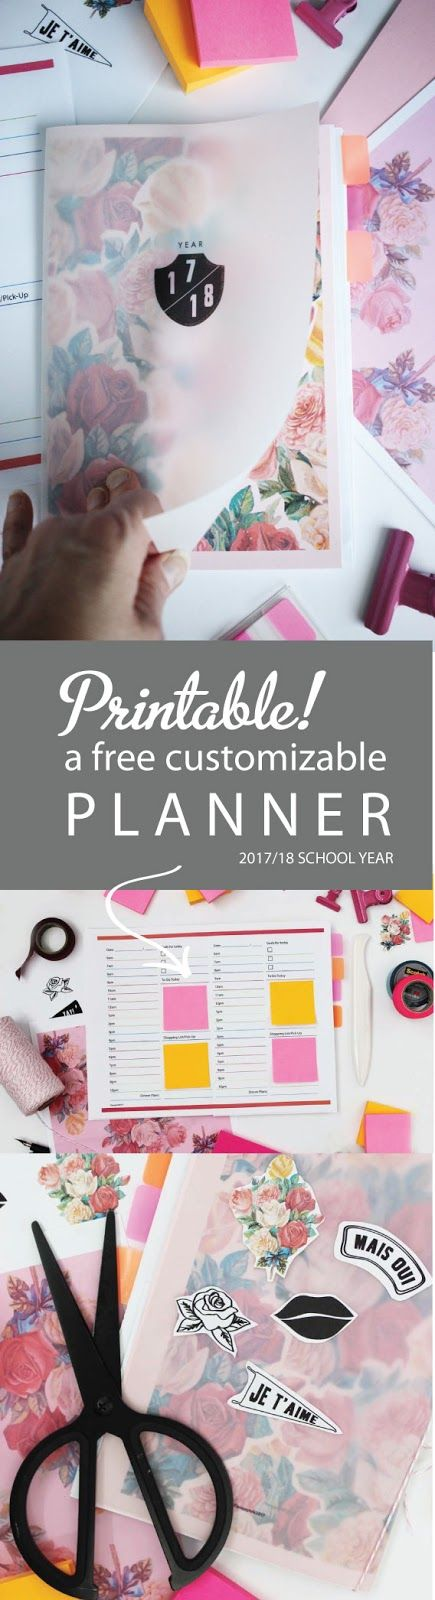 Get organized for back-to-school with a free printable and customizable planner complete with a 12 month planner, daily sheets, brainstorming sheets and more with @PostitCanada  DIY   An Awesome Printable Planner   Poppytalk